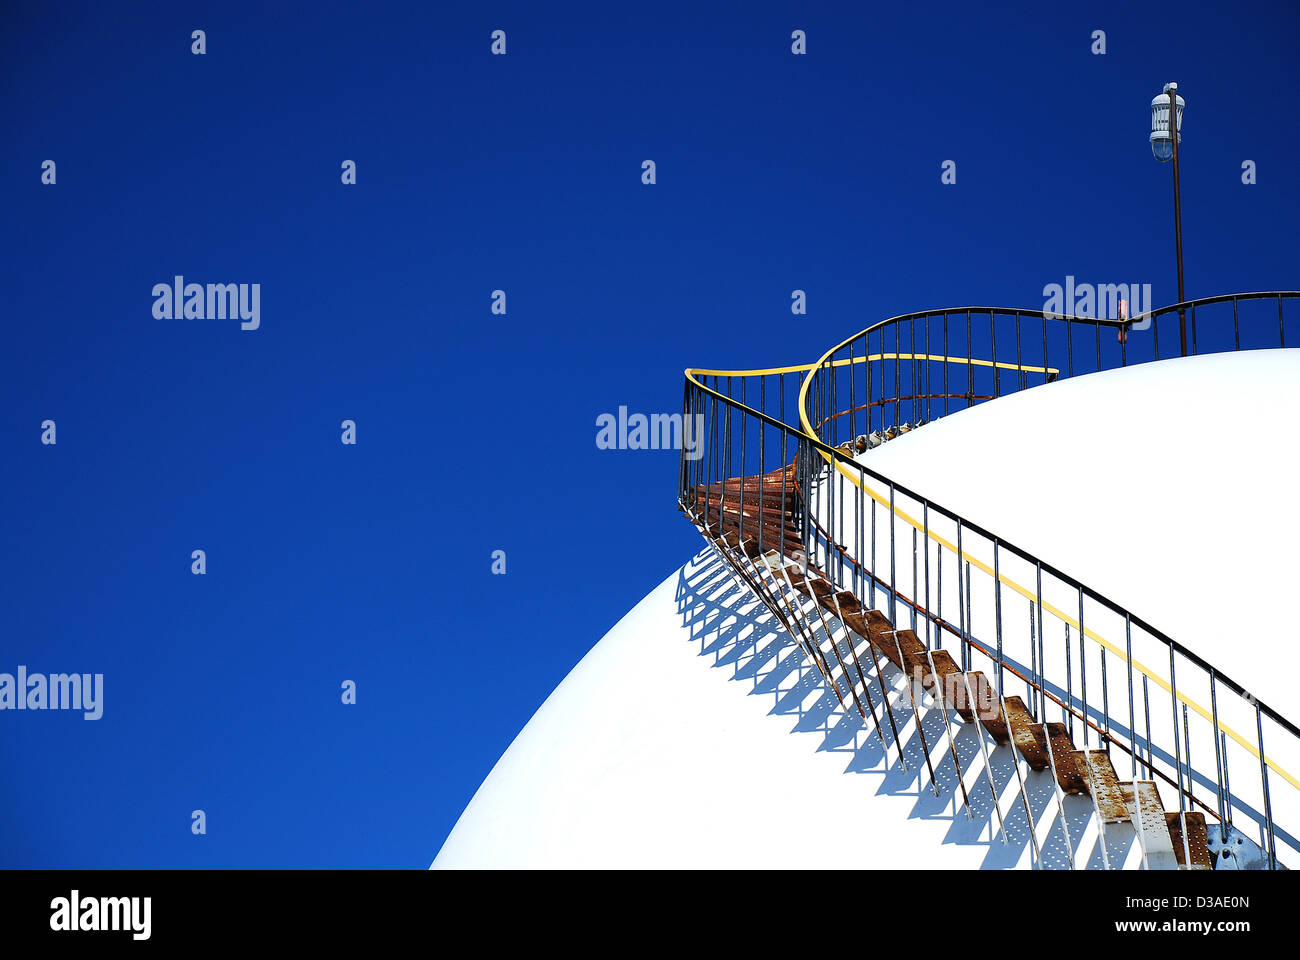 Gas storage tank and ladder. - Stock Image